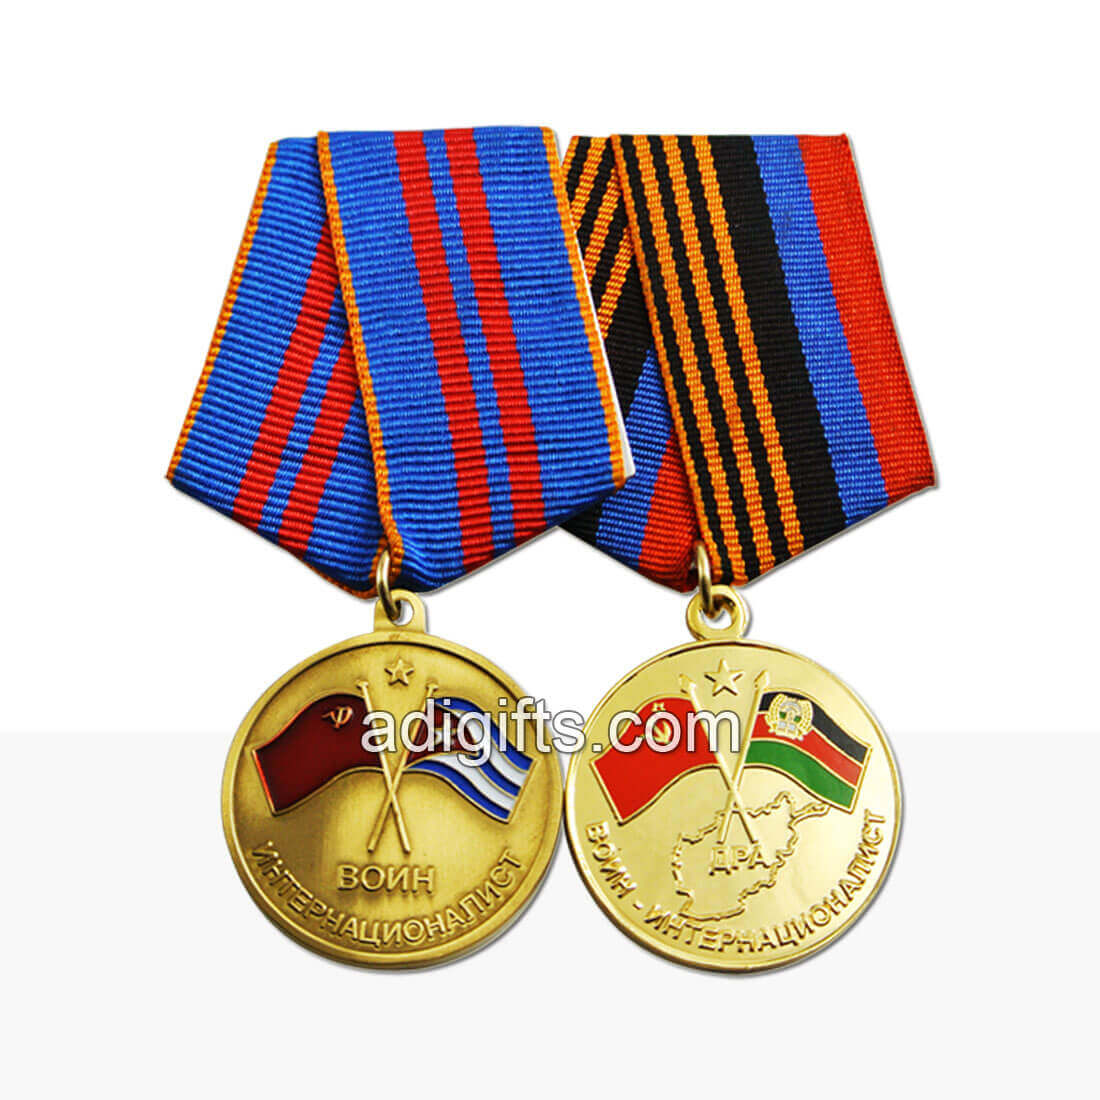 Hot sales custom army medals and ribbons